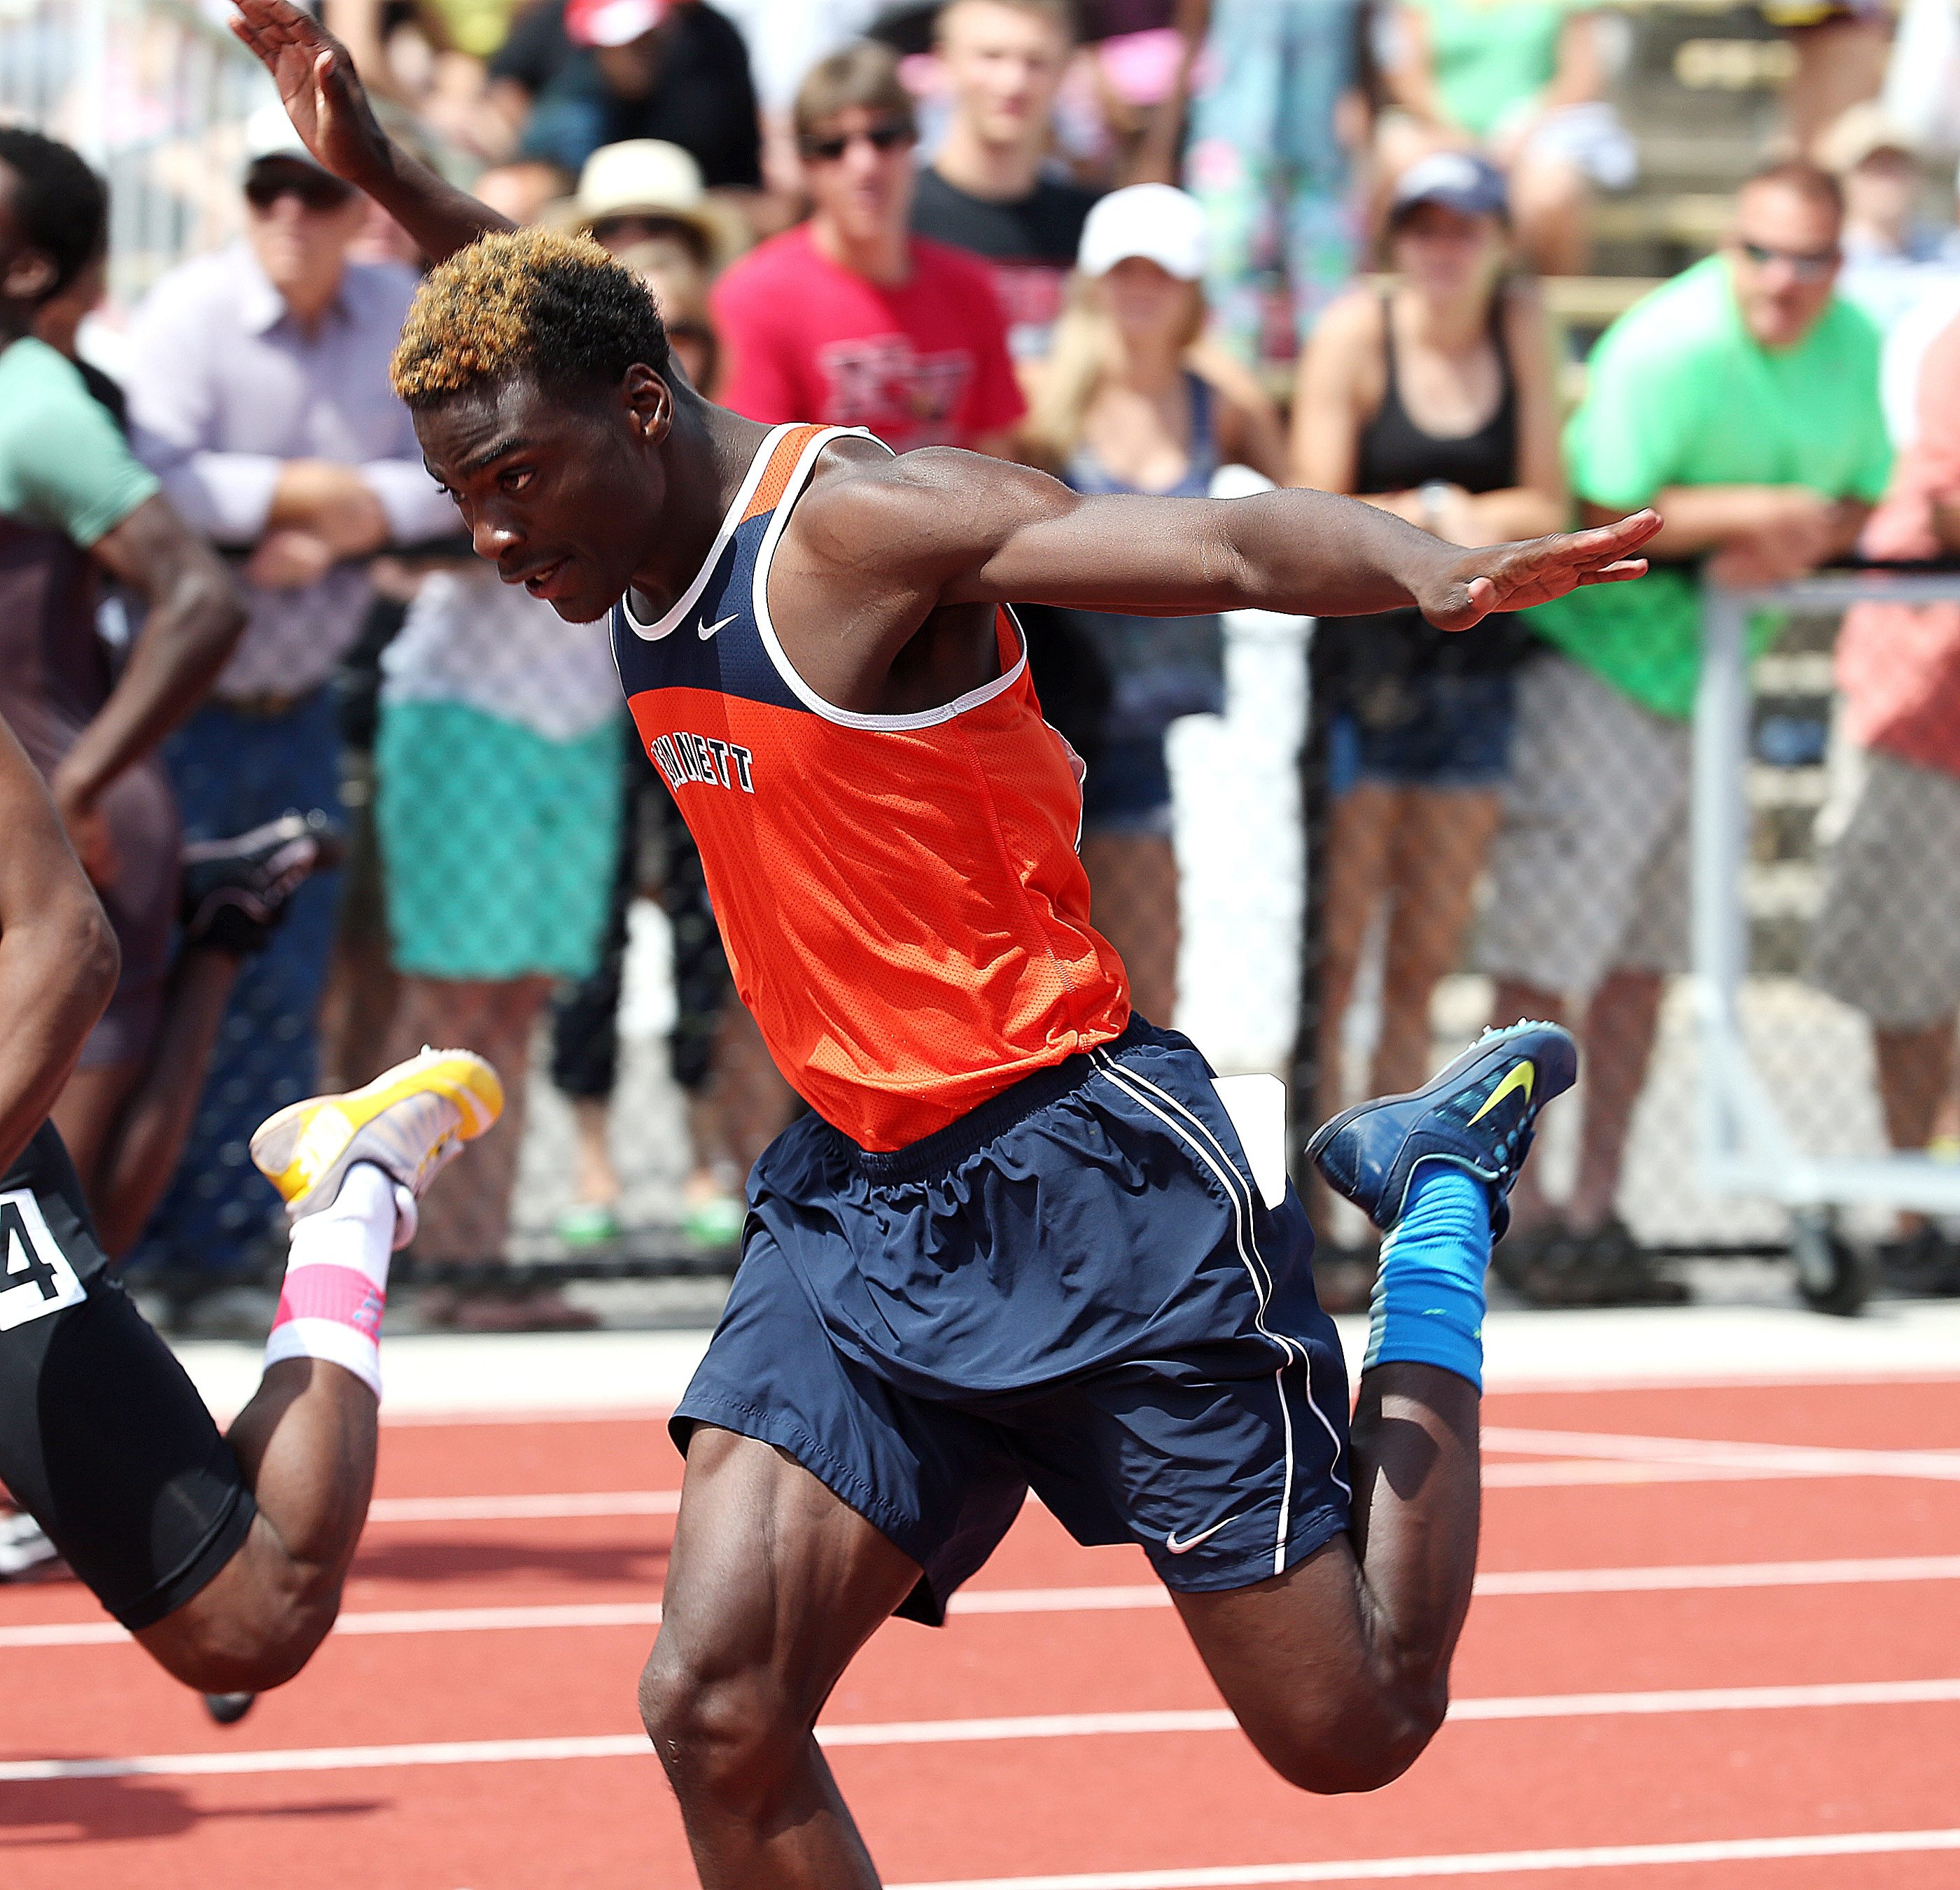 Bennett's Alex Dildy competes in the boys 100 meter dash, finishing at 11.02 seconds.